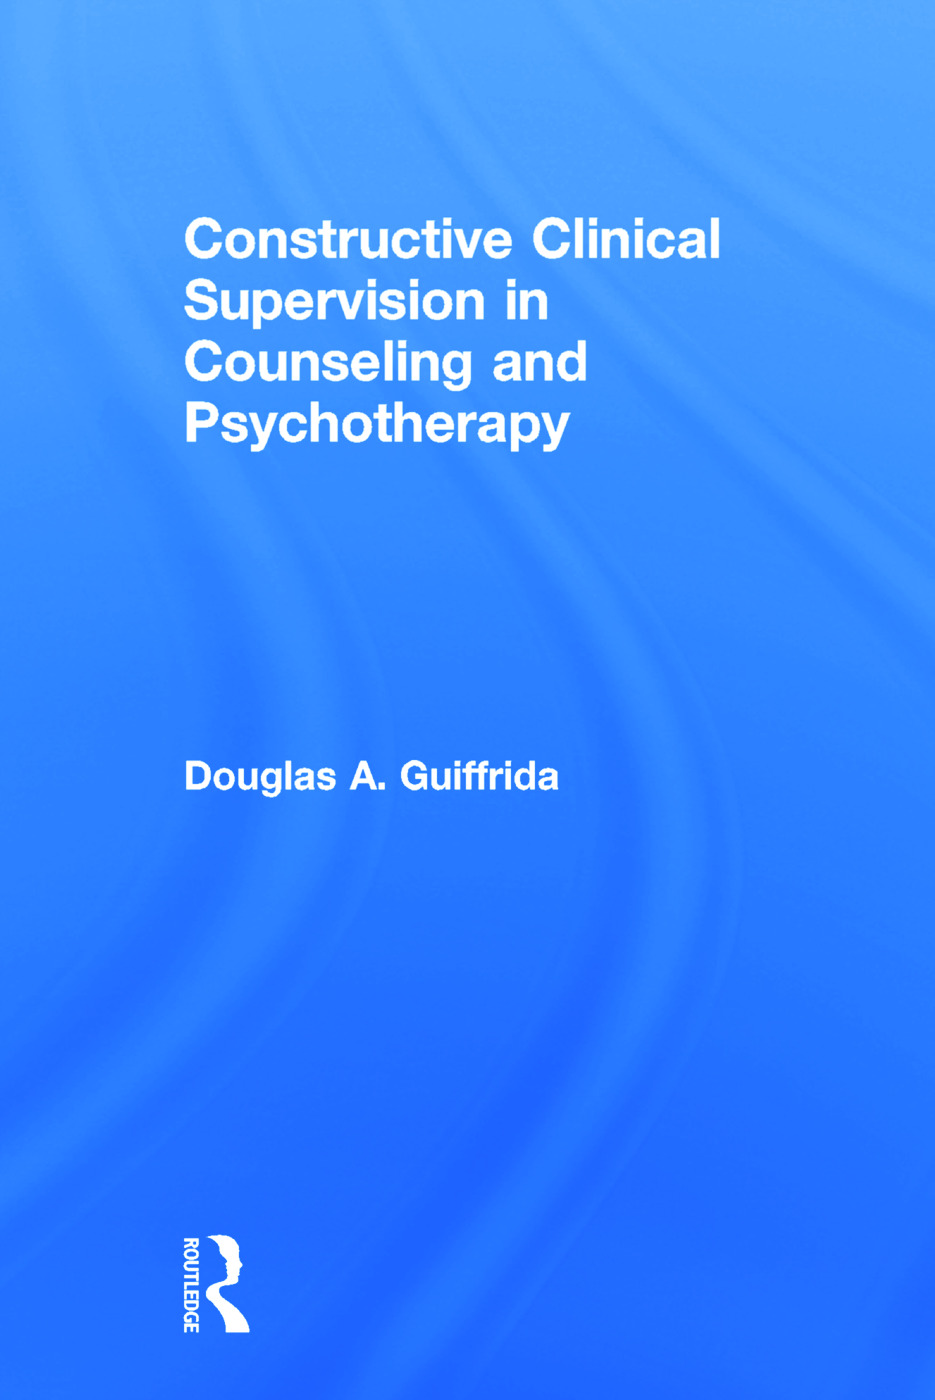 Constructive Clinical Supervision in Counseling and Psychotherapy: 1st Edition (Hardback) book cover